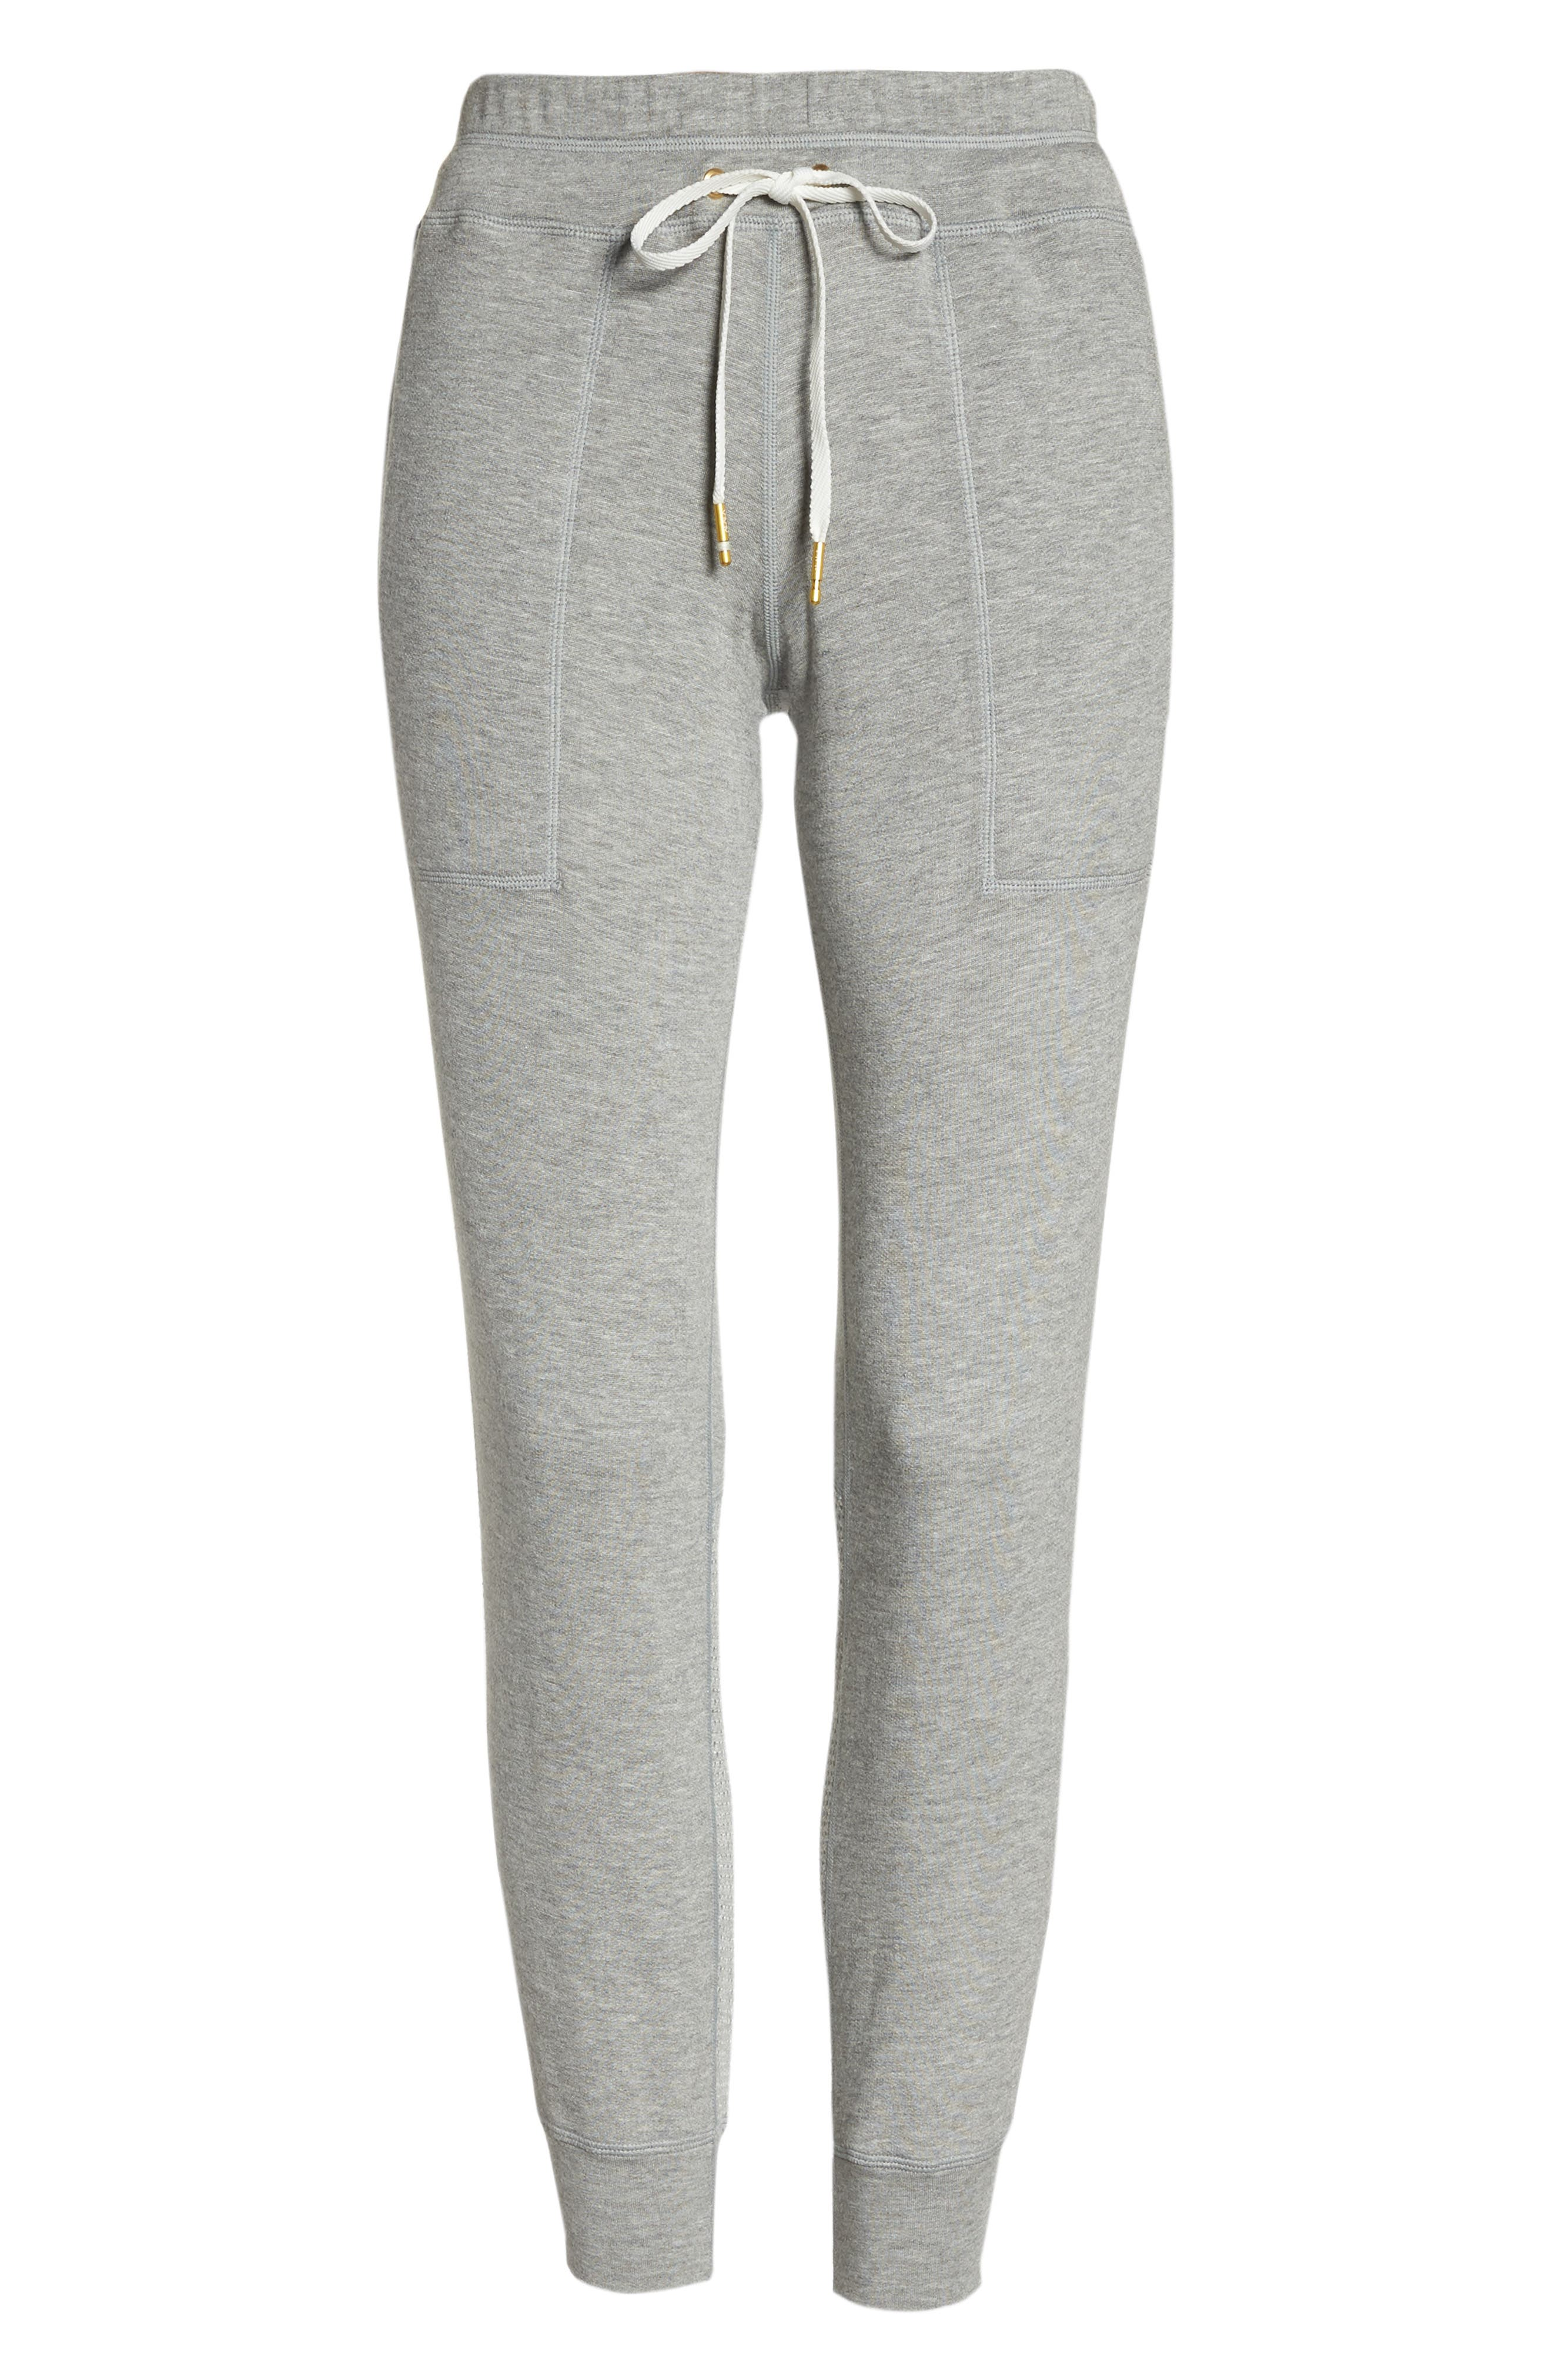 Heron Ankle Jogger Pants,                             Alternate thumbnail 7, color,                             Heather Grey